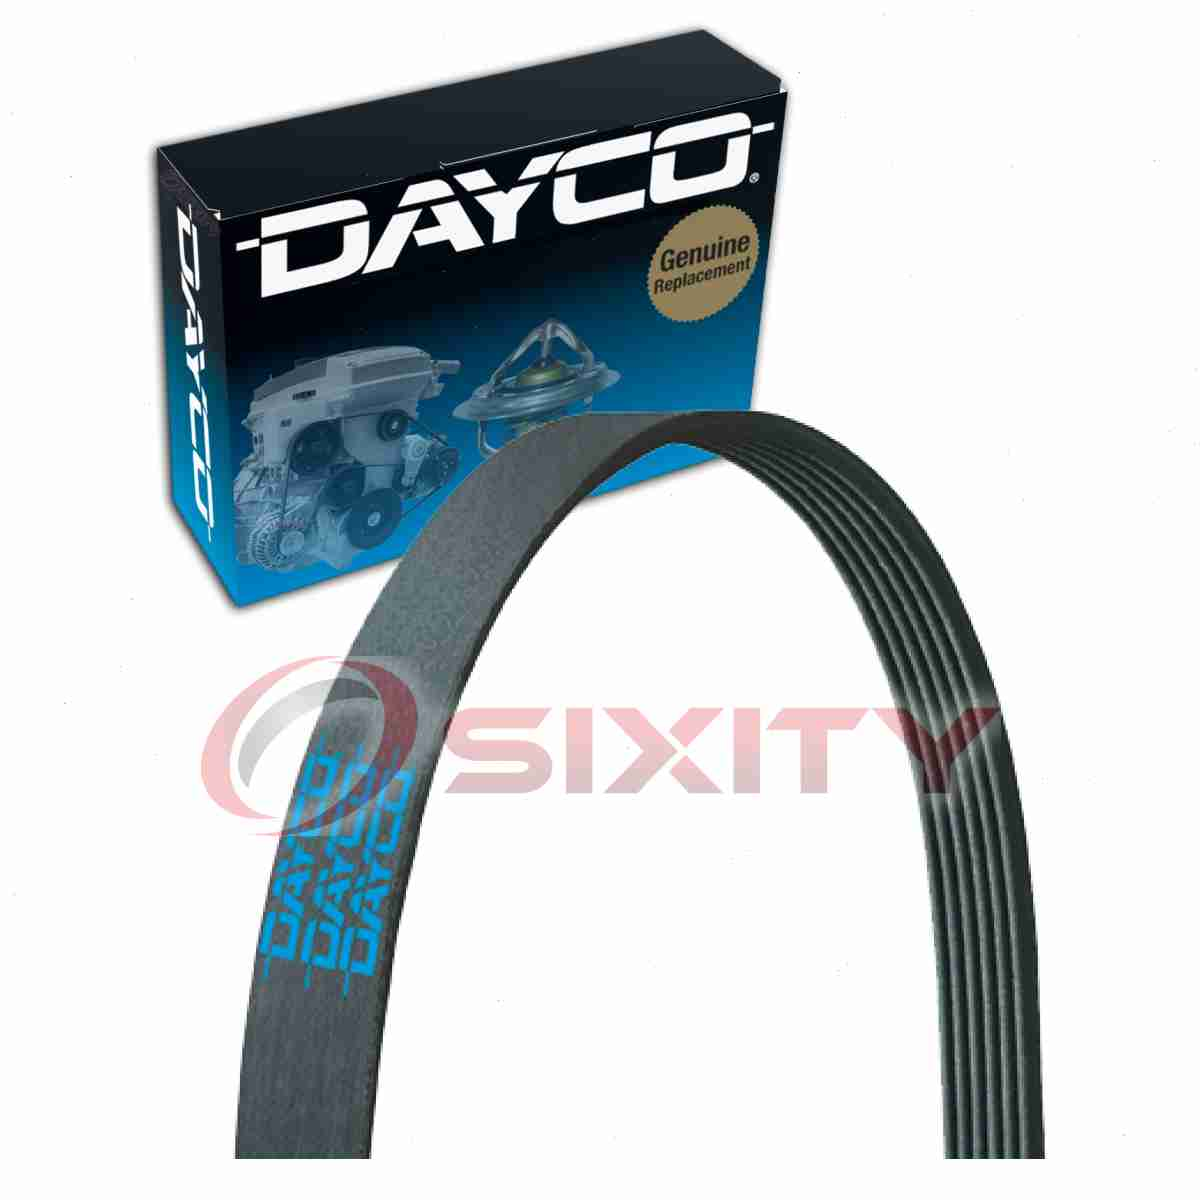 small resolution of details about dayco serpentine belt for 2005 2011 volvo xc90 4 4l v8 v belt ribbed ky